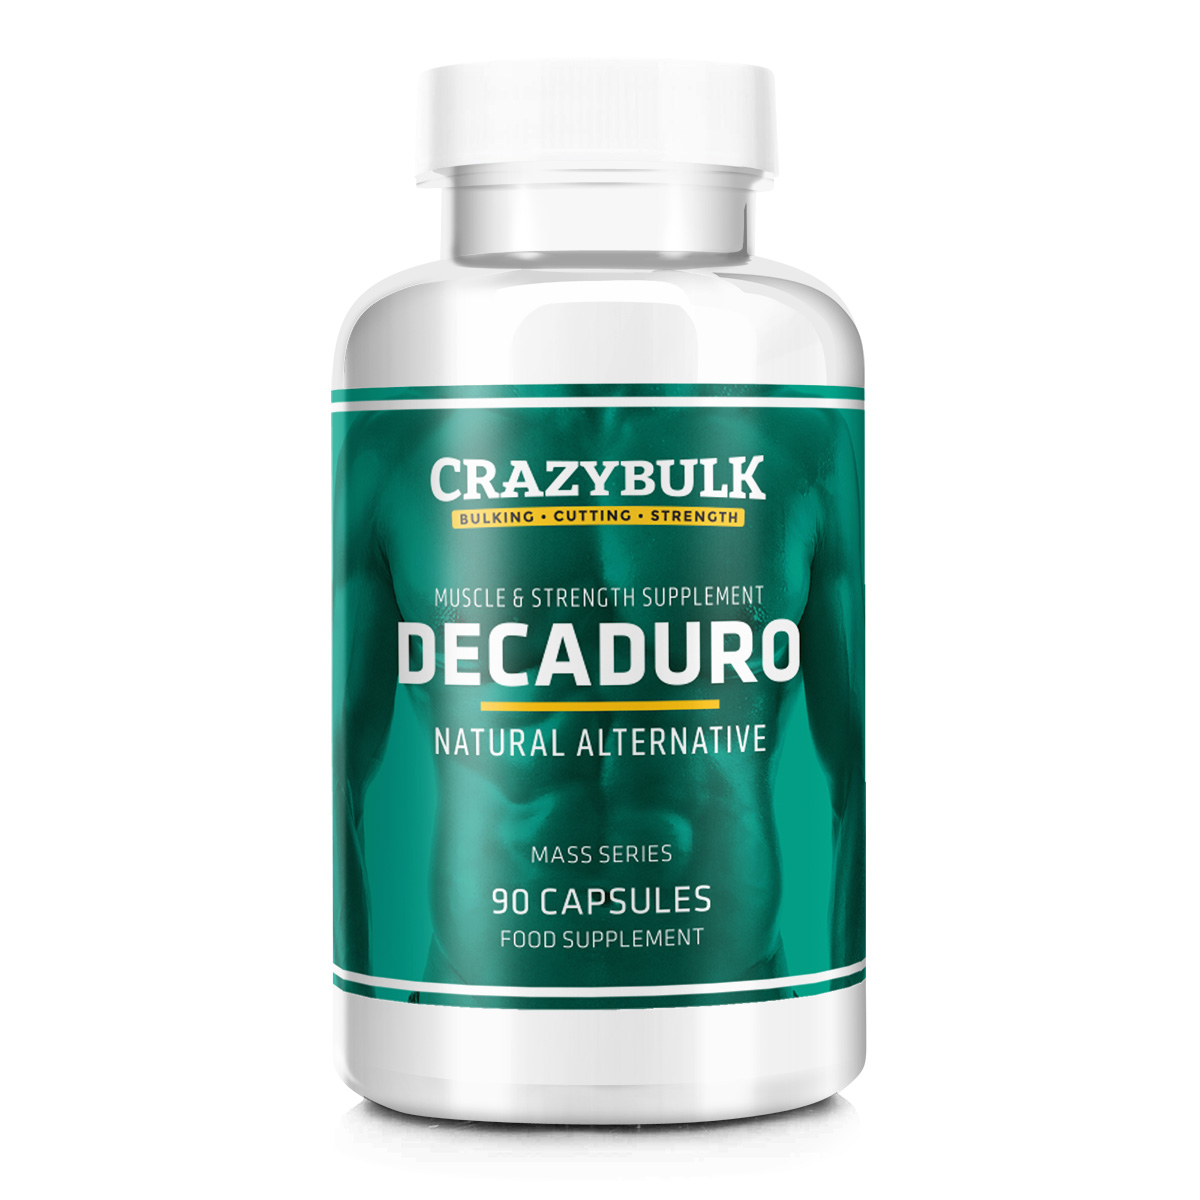 decaduro crazybulk يستكثر مراجعة كومة